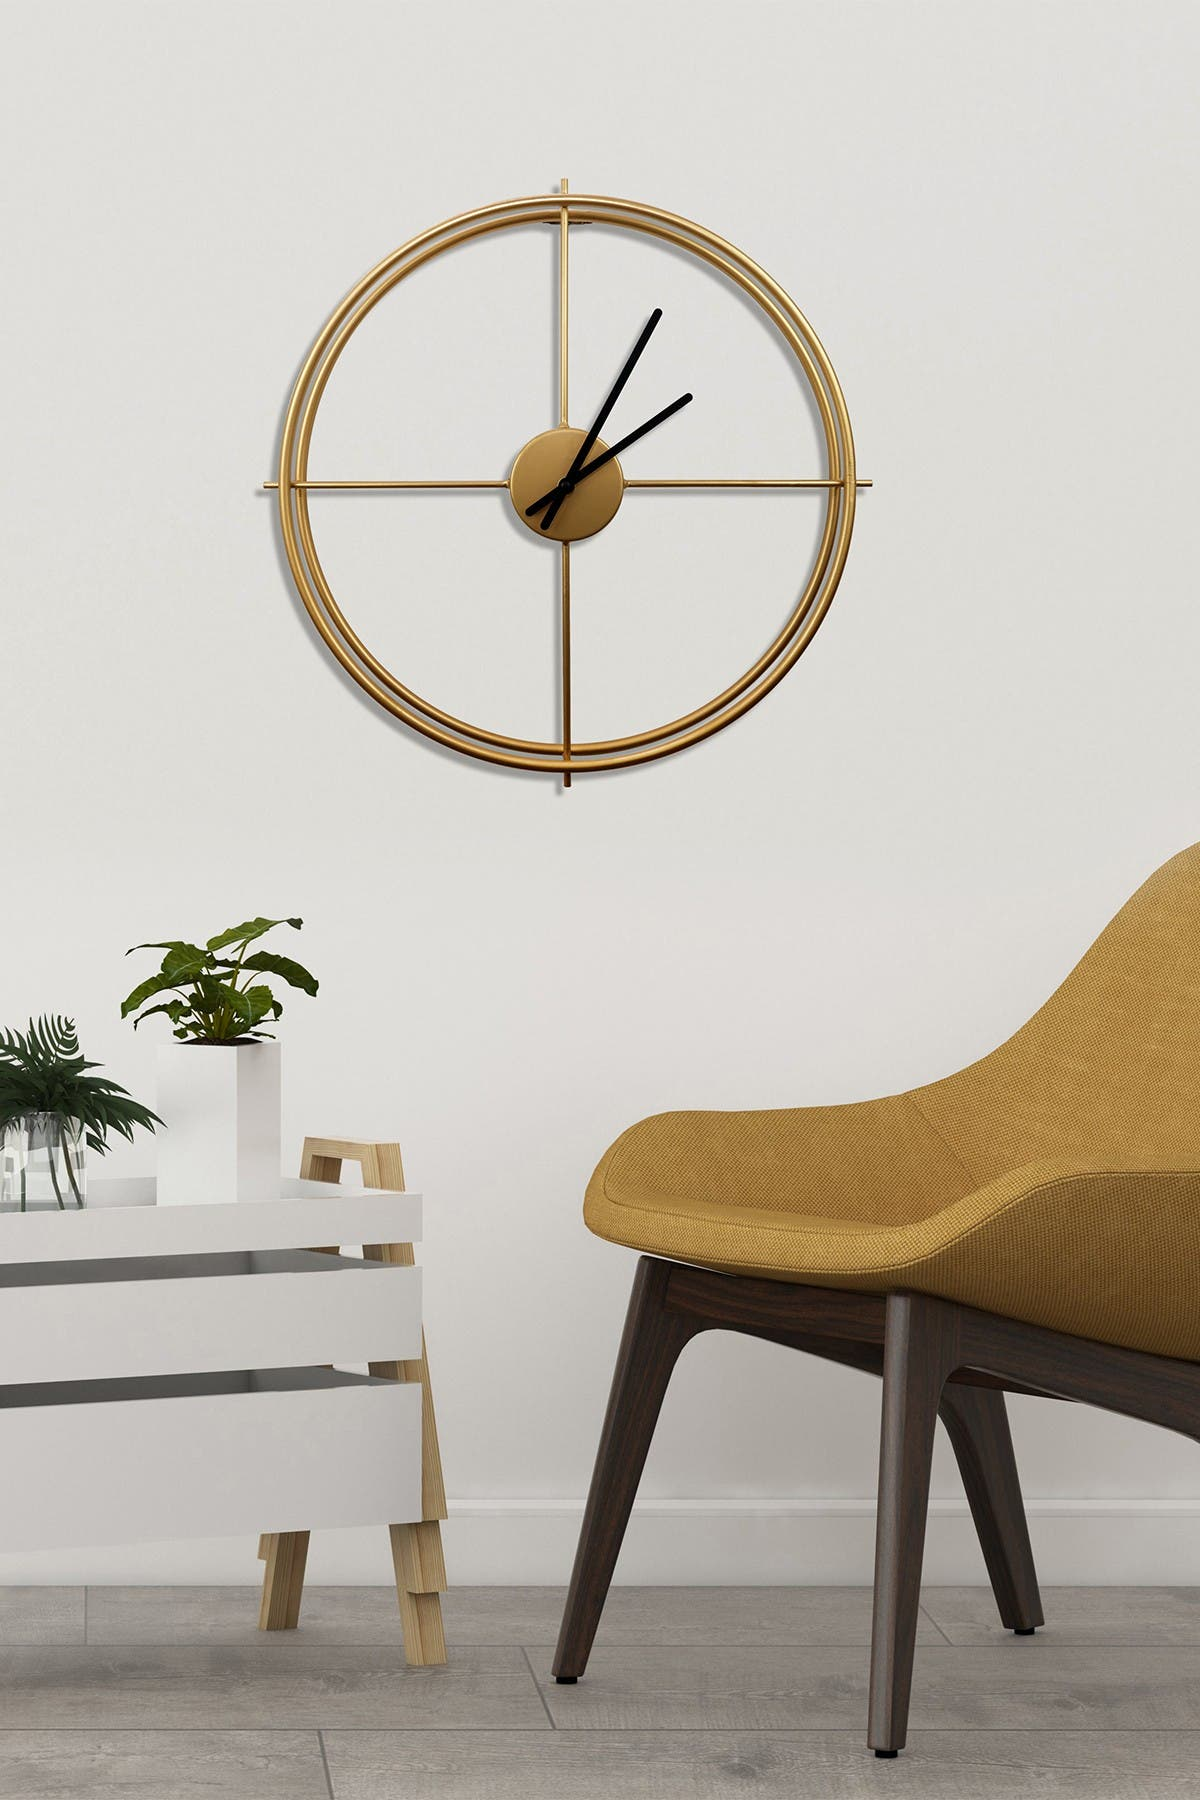 Image of WalPlus Minimalist 50cm Iron Wall Clock - Gold